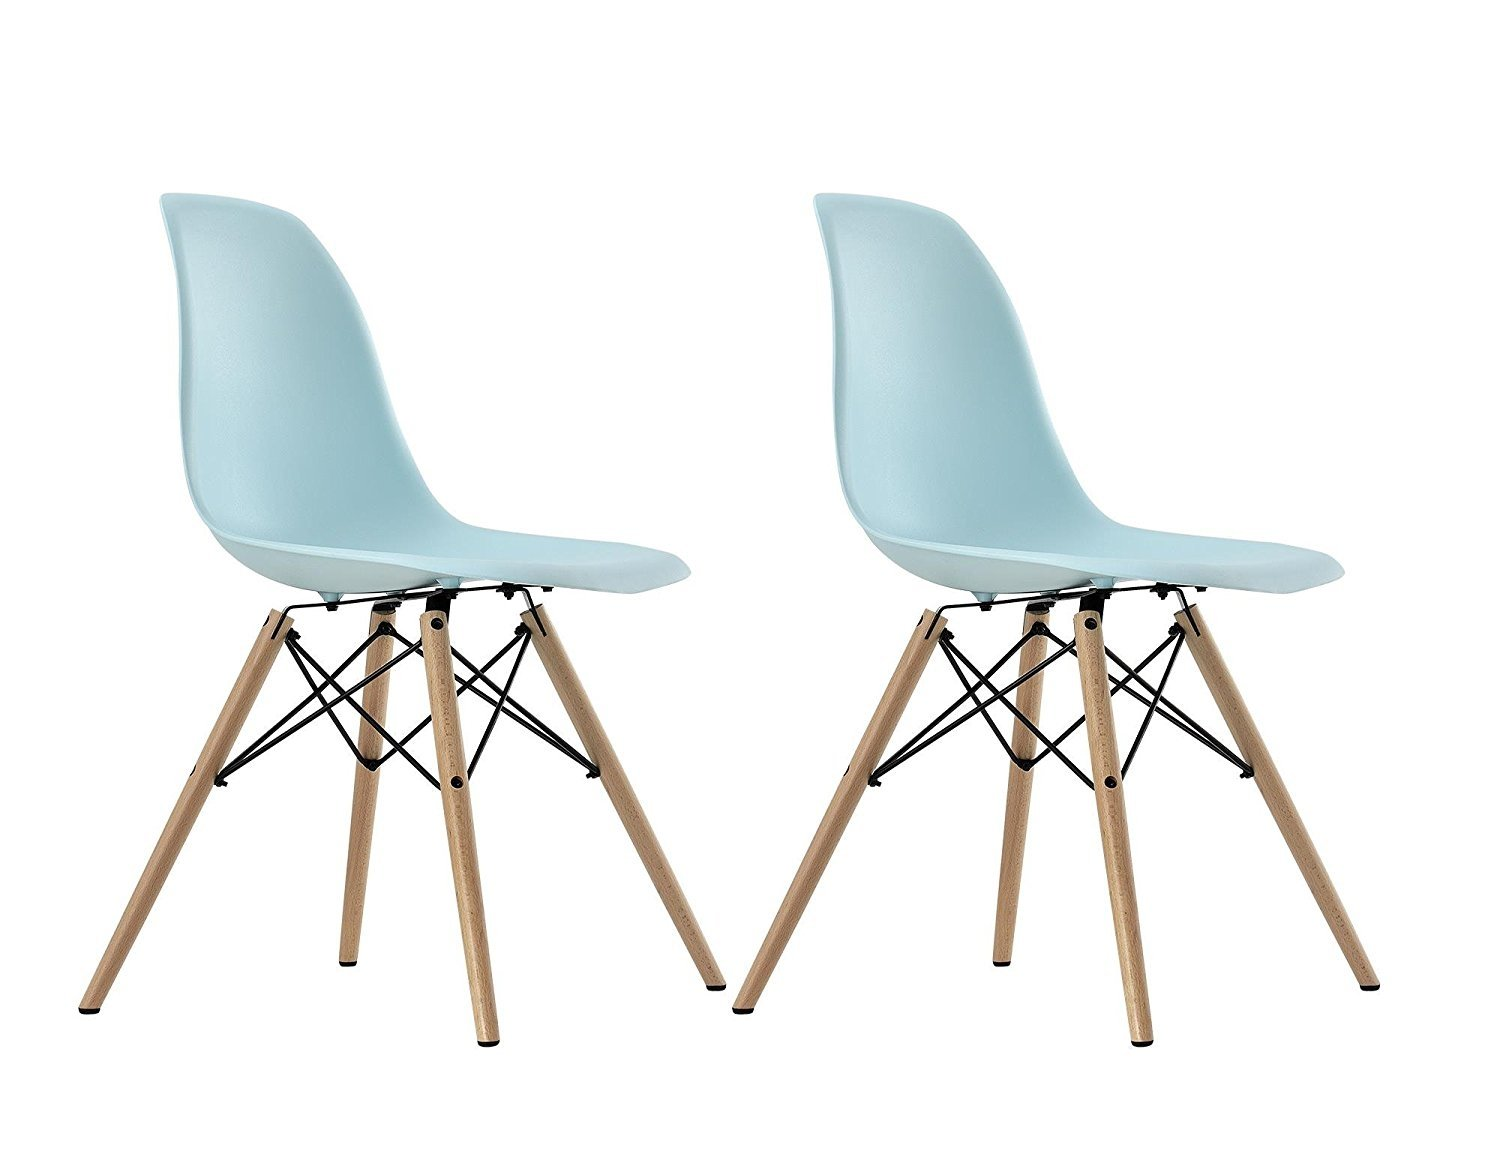 Eames Chair Replica Ebay Dhp Eames Replica Molded Chair With Wood Leg Set Of 2 Light Blue C012709